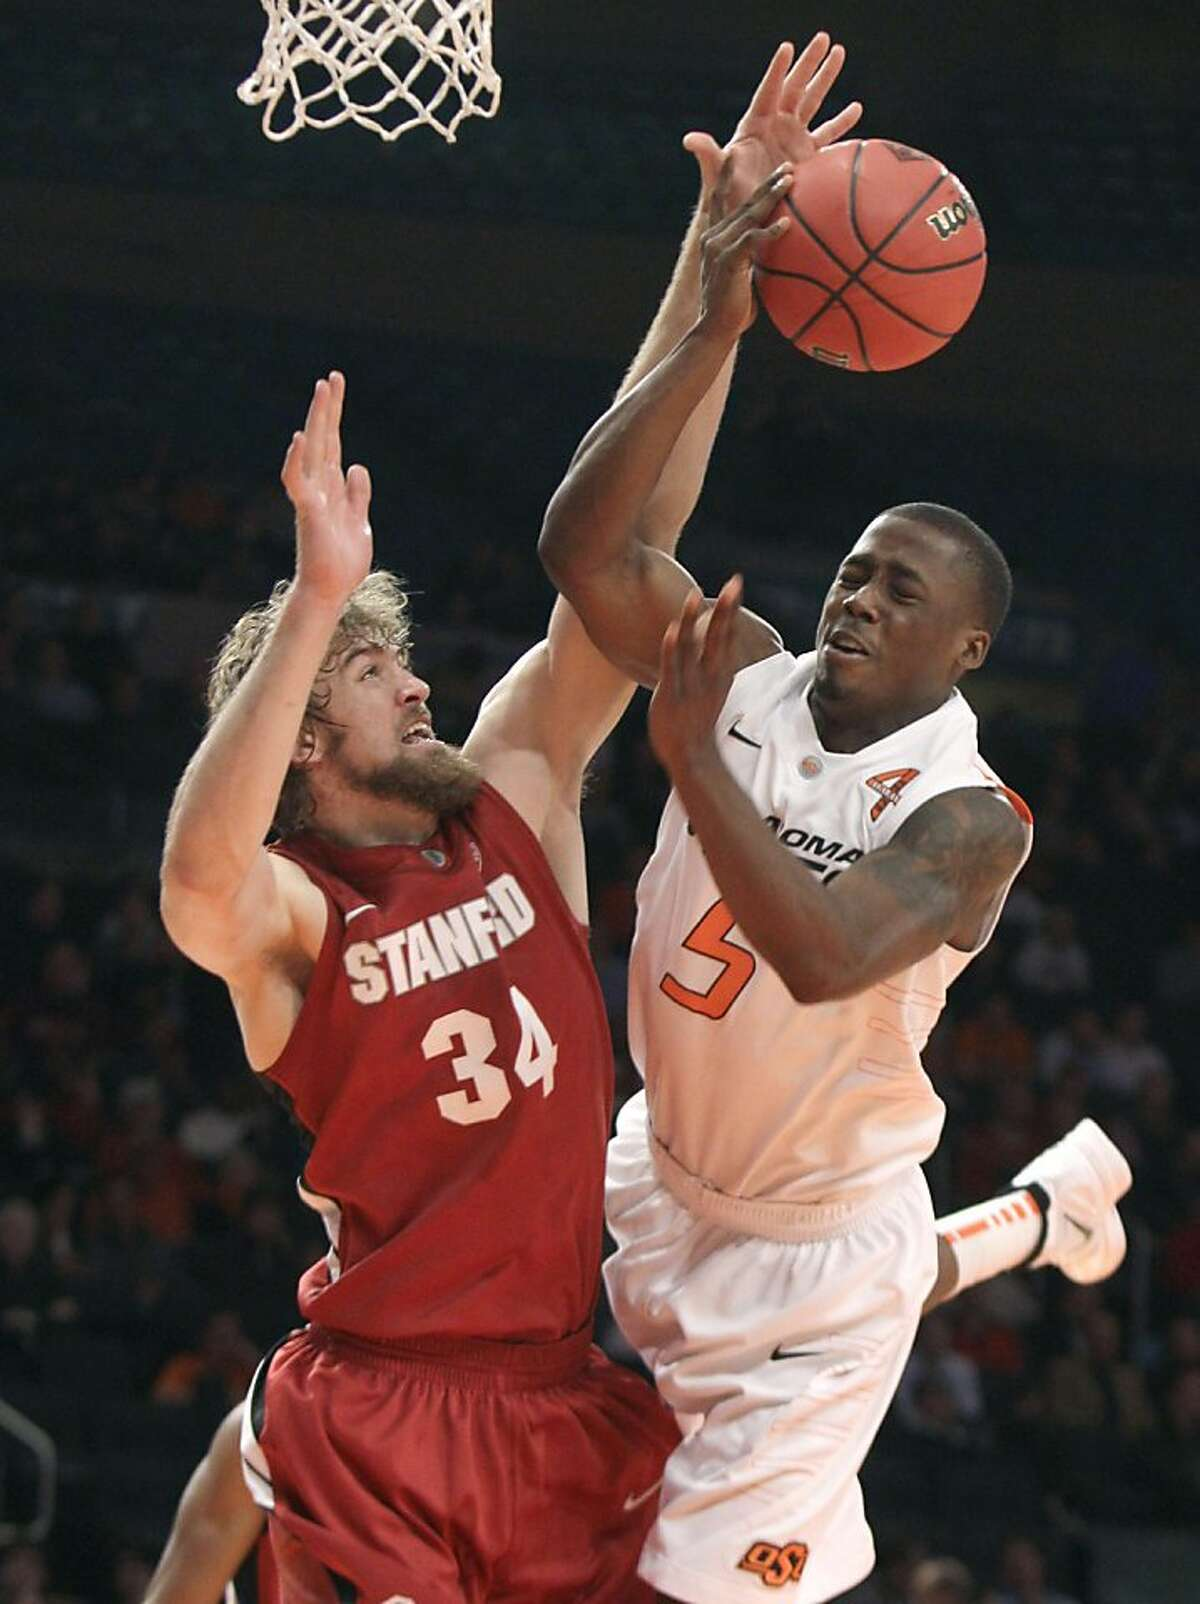 Stanford forward Andrew Zimmerman, left, blocks a shot by Oklahoma State guard Reger Dowell in the second half of an NIT Season Tip-Off college basketball tournament game at New York's Madison Square Garden, Wednesday, Nov. 23, 2011. Stanford won 82-67. (AP Photo/Richard Drew) Ran on: 11-24-2011 Stanford forward Andrew Zimmerman gets in the way of Oklahoma State guard Reger Dowell. Ran on: 11-24-2011 Stanford forward Andrew Zimmerman gets in the way of Oklahoma State guard Reger Dowell.